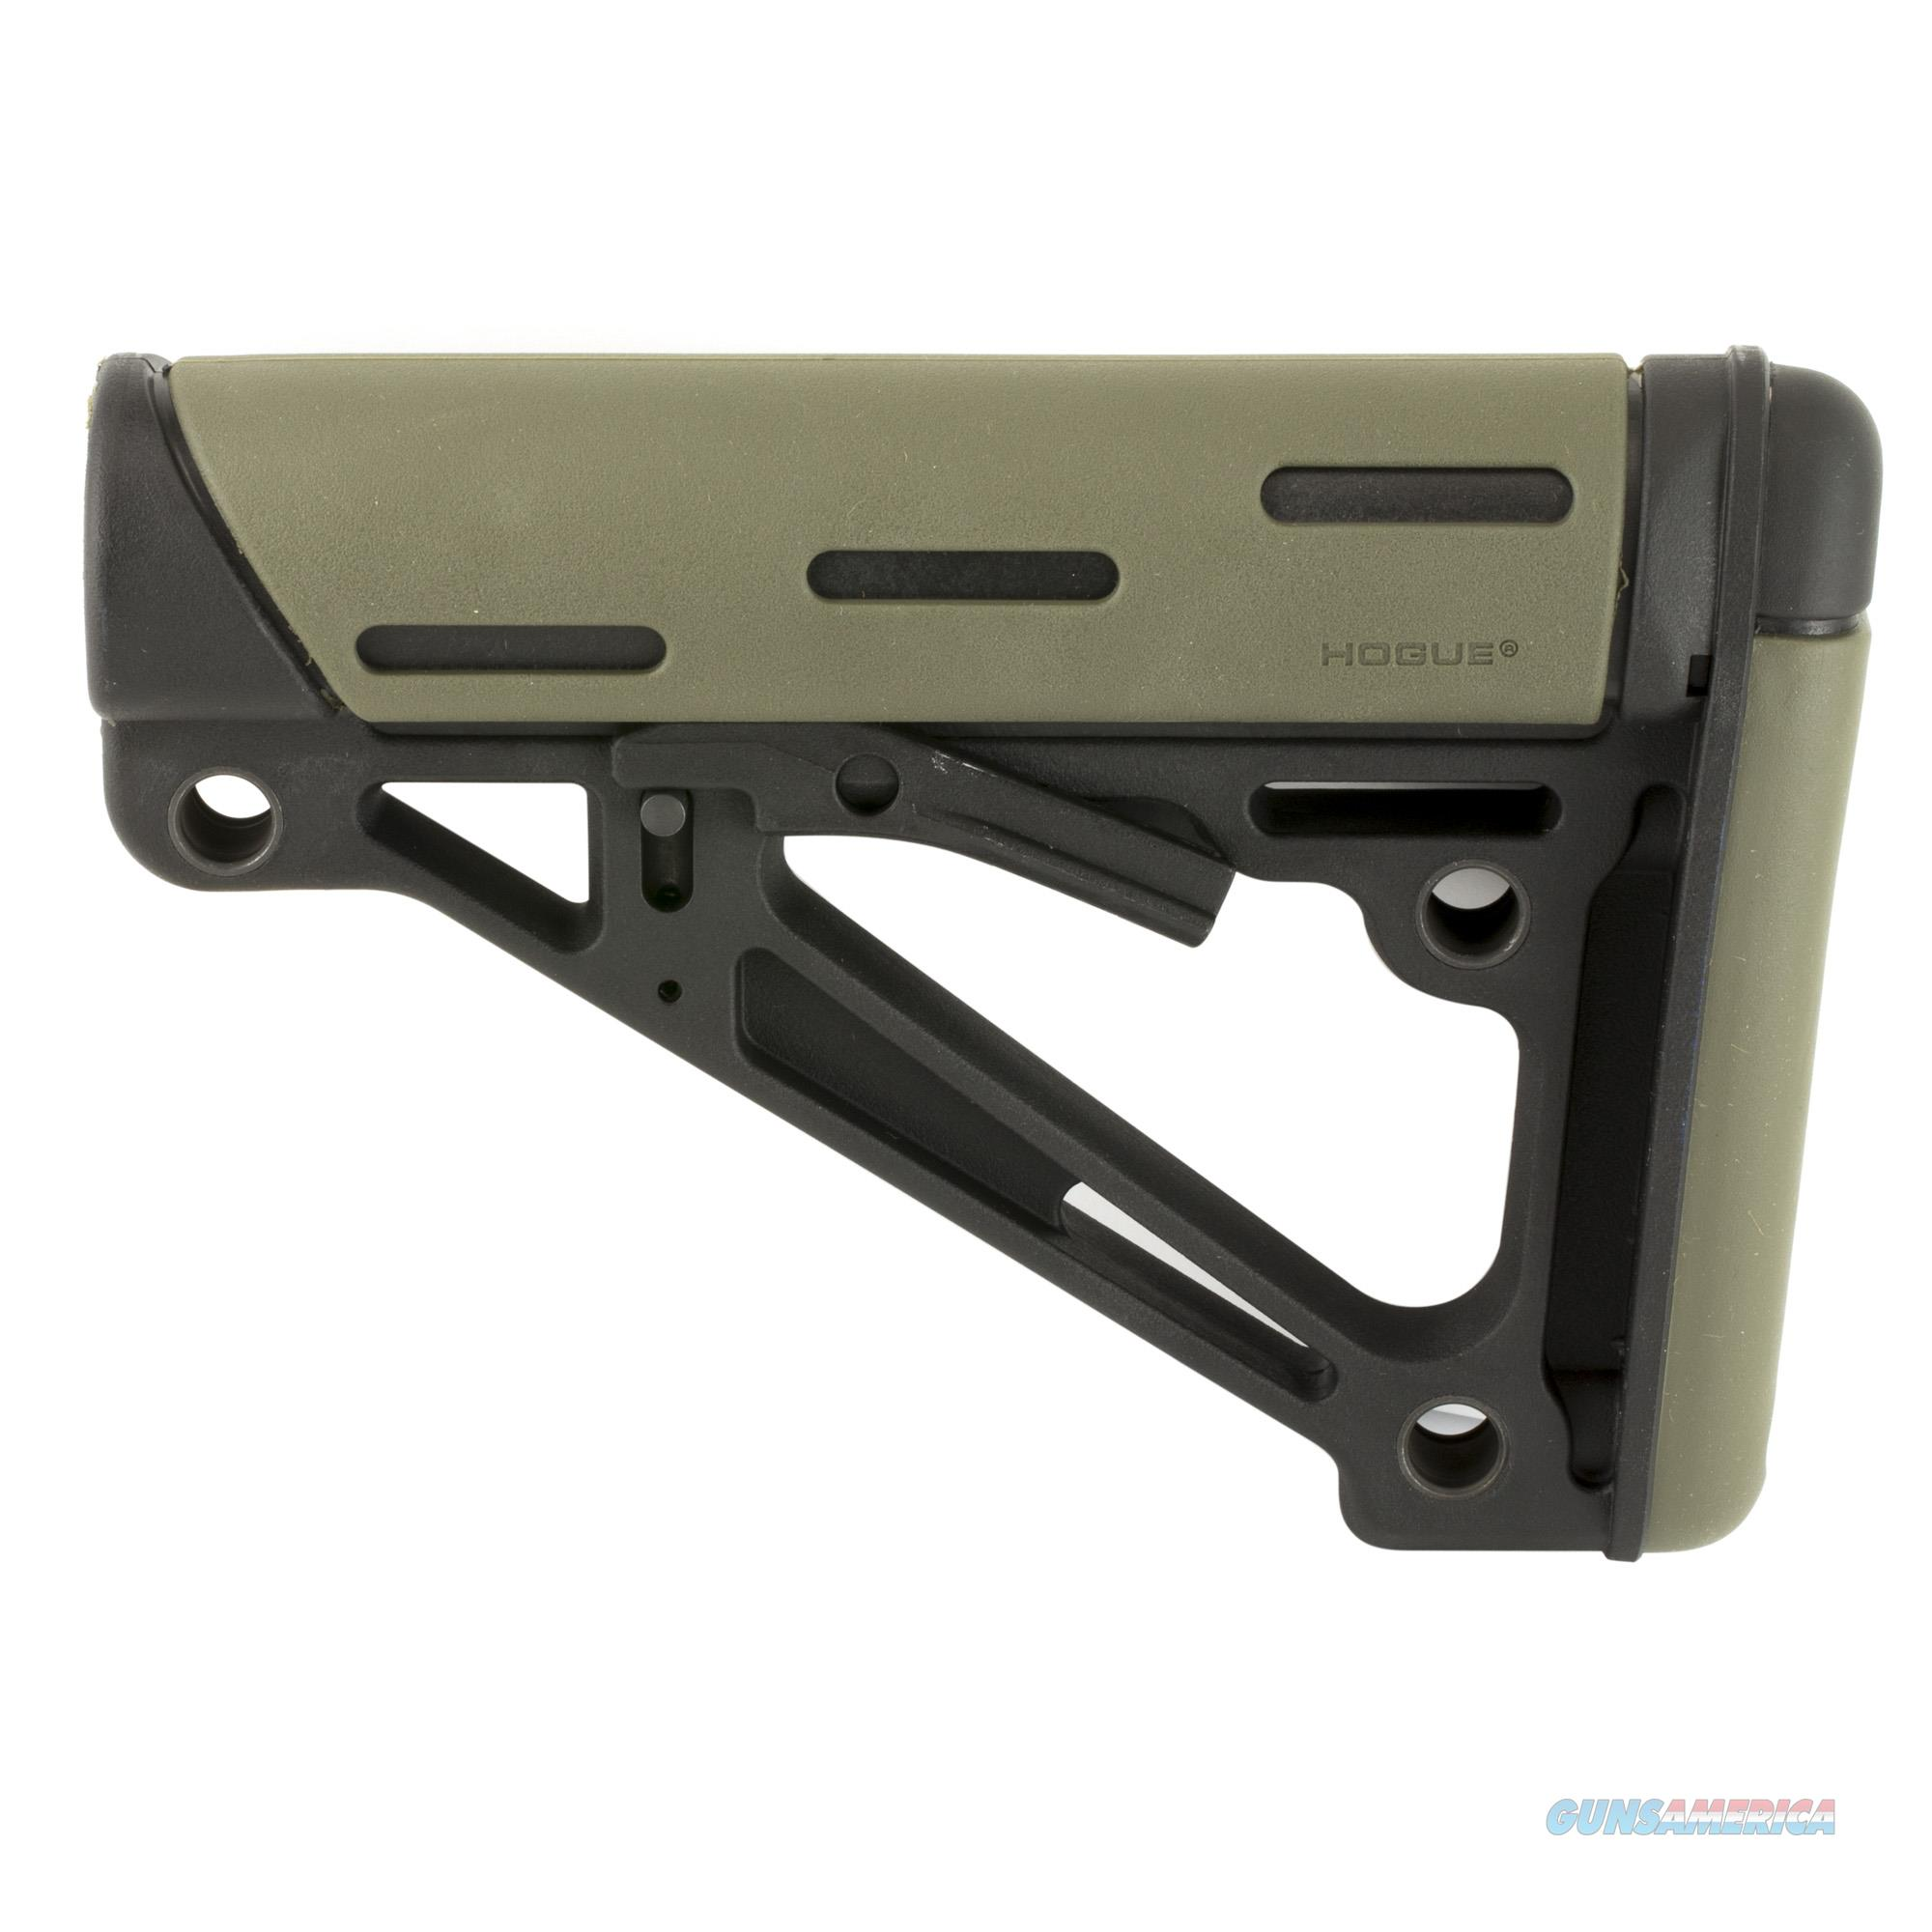 Hogue AR-15/M-16 OverMolded Collapsible Buttstock Mil-Spec Buffer Tube, Olive Drab Green Rubber 15240  Non-Guns > Gun Parts > Stocks > Polymer